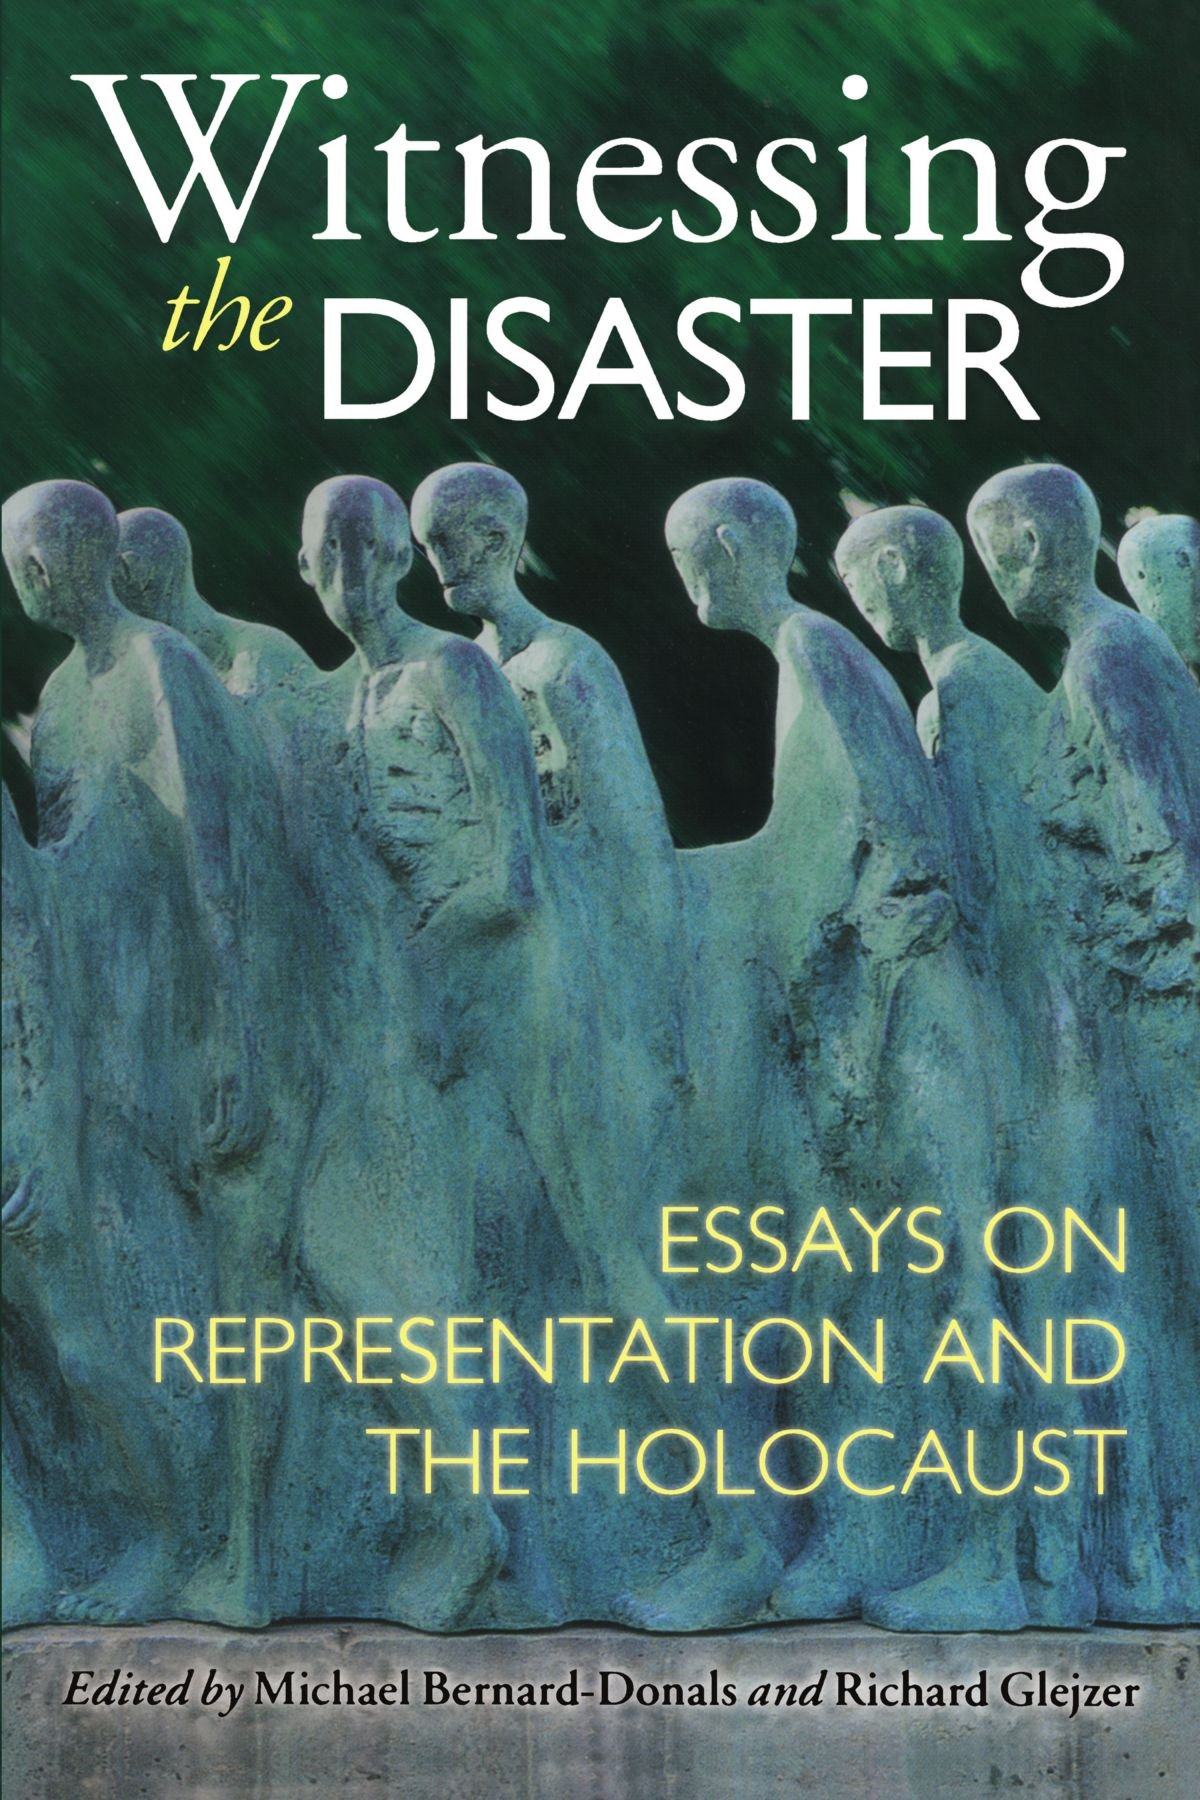 Top Essay Writing Services Witnessing The Disaster Essays On Representation And The Holocaust  Michael Bernarddonals Richard Glejzer  Amazoncom Books Essay About Poverty also Teacher Essay Witnessing The Disaster Essays On Representation And The Holocaust  Essay On Culture And Tradition